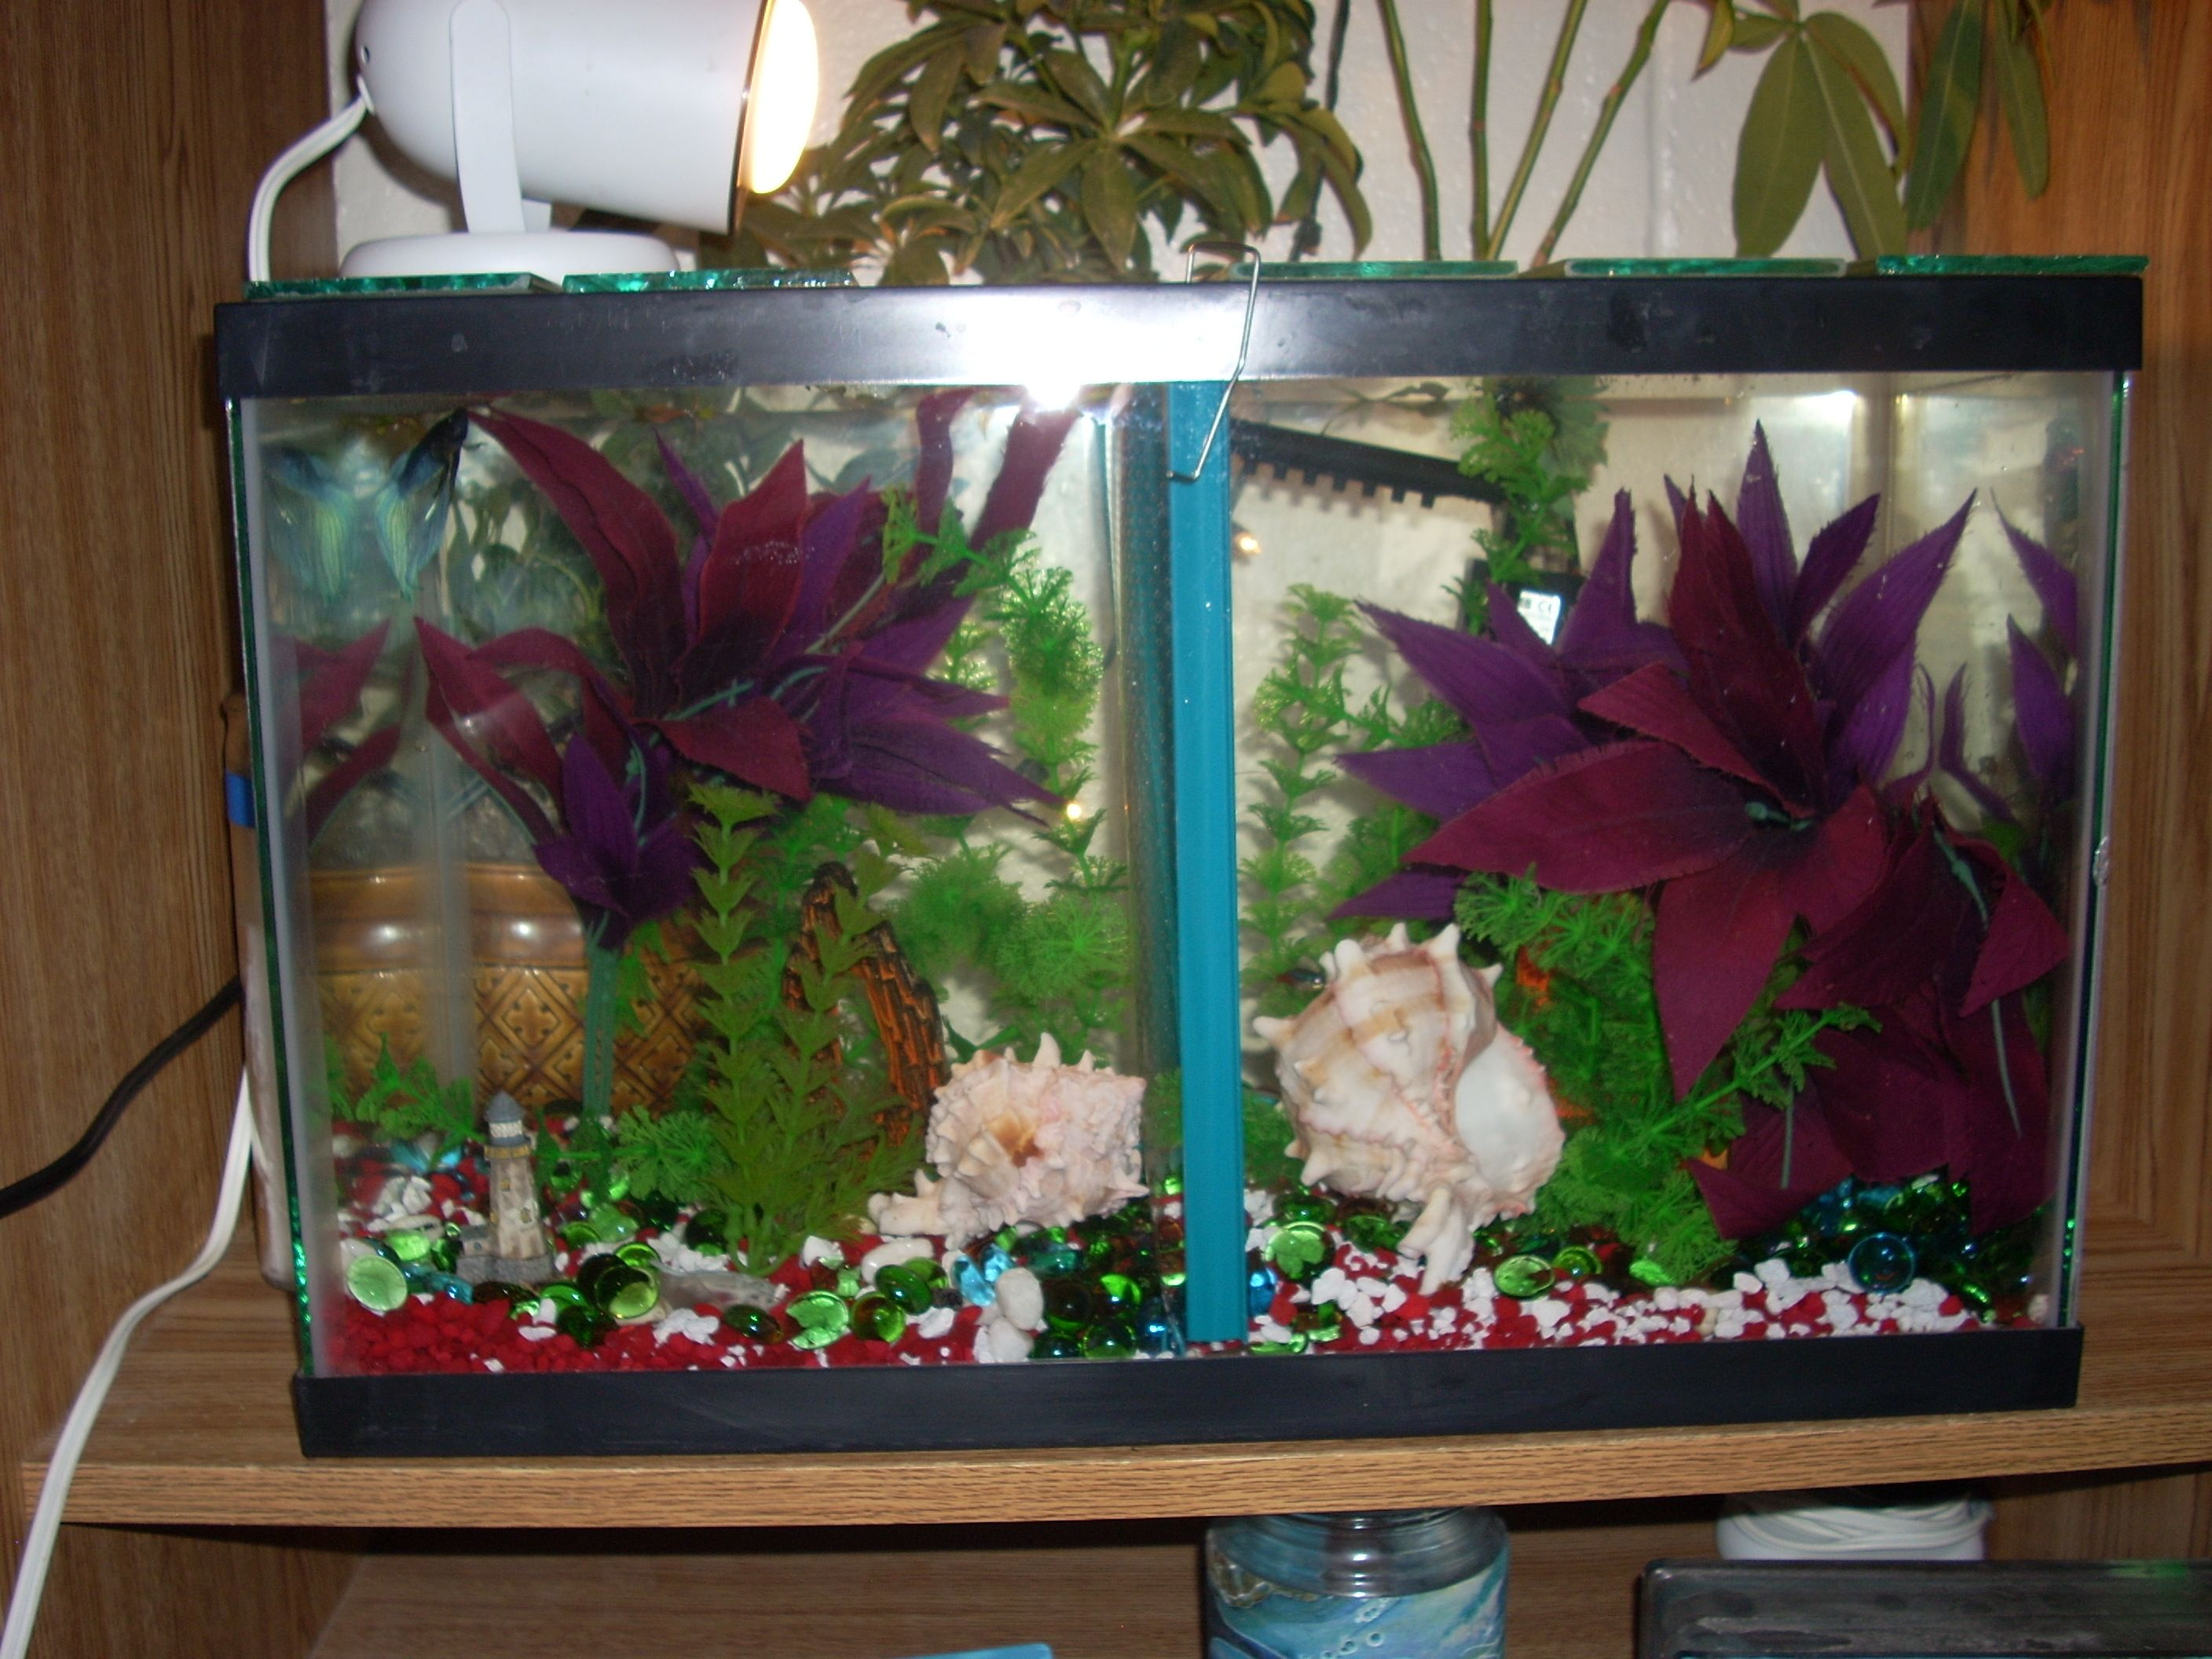 20 gallon tank divided in two for two look alike betta s course